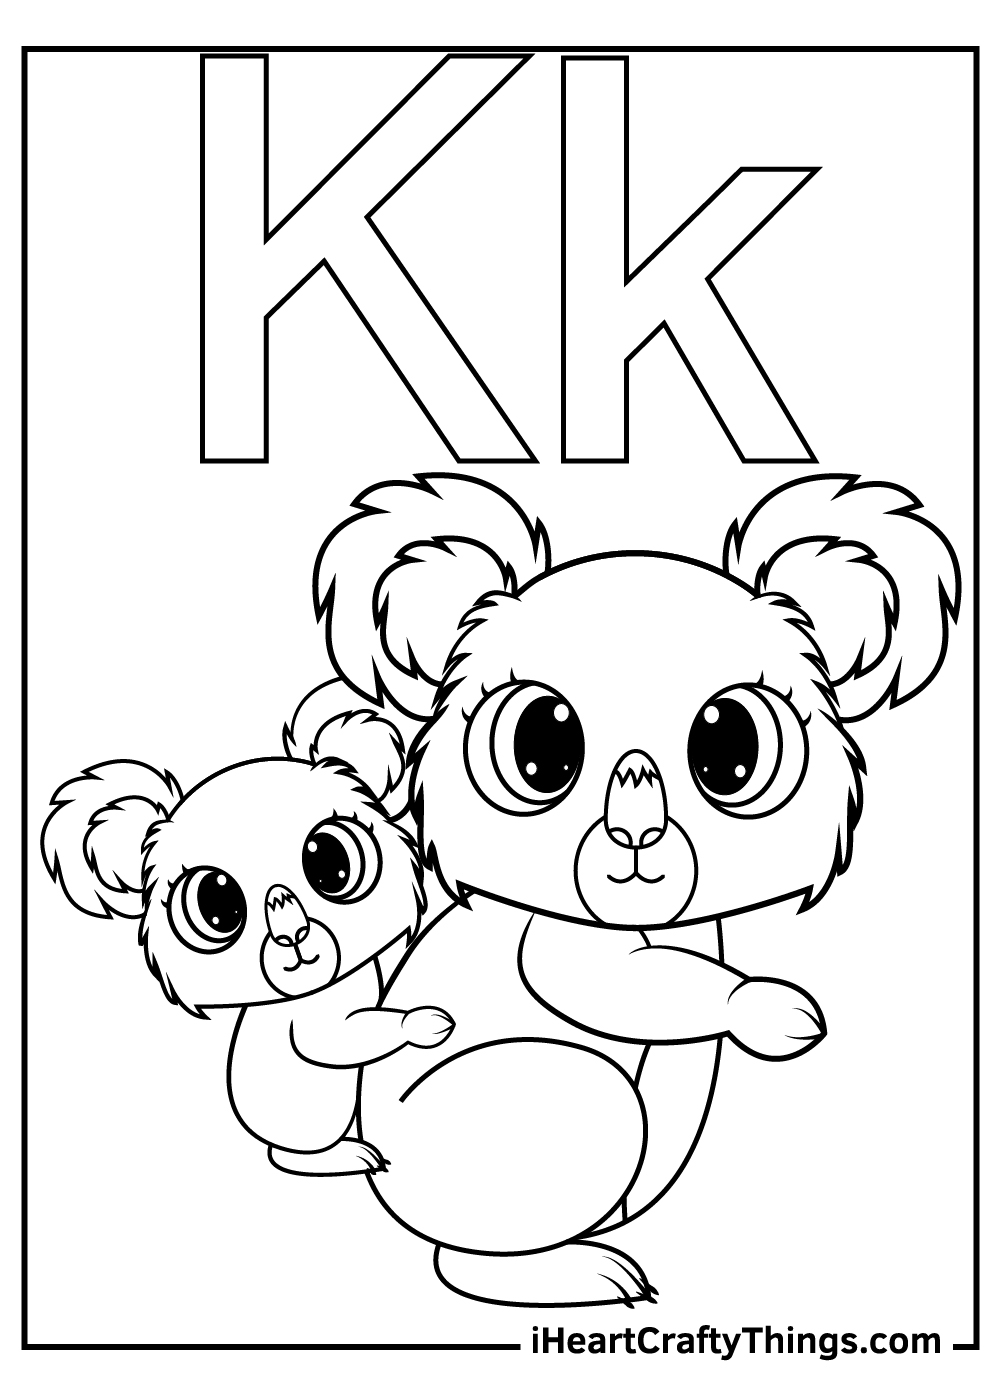 k is for koala coloring for toddlers coloring pages free